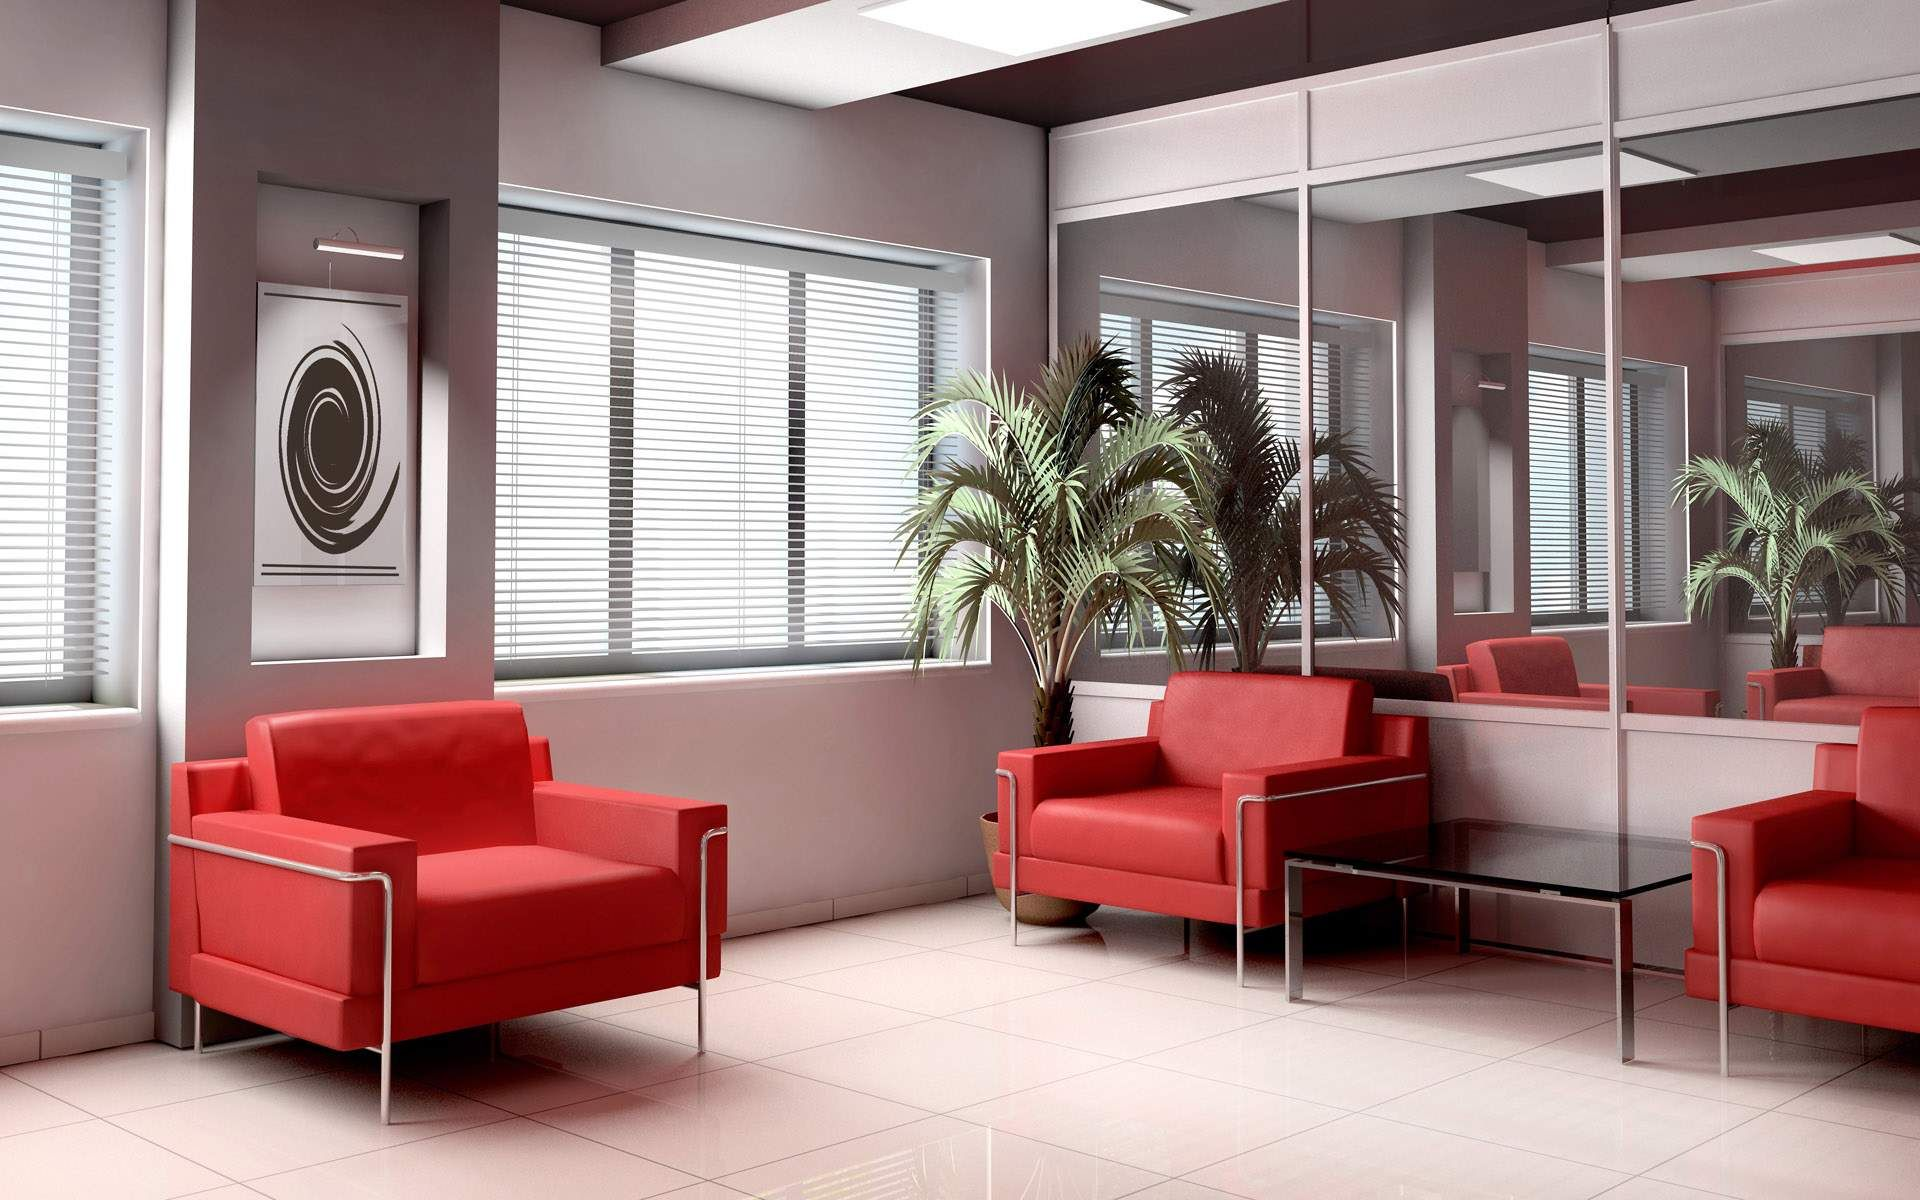 Living room decorating ideas red - Room Best Red Sofas Living Room Interior Design